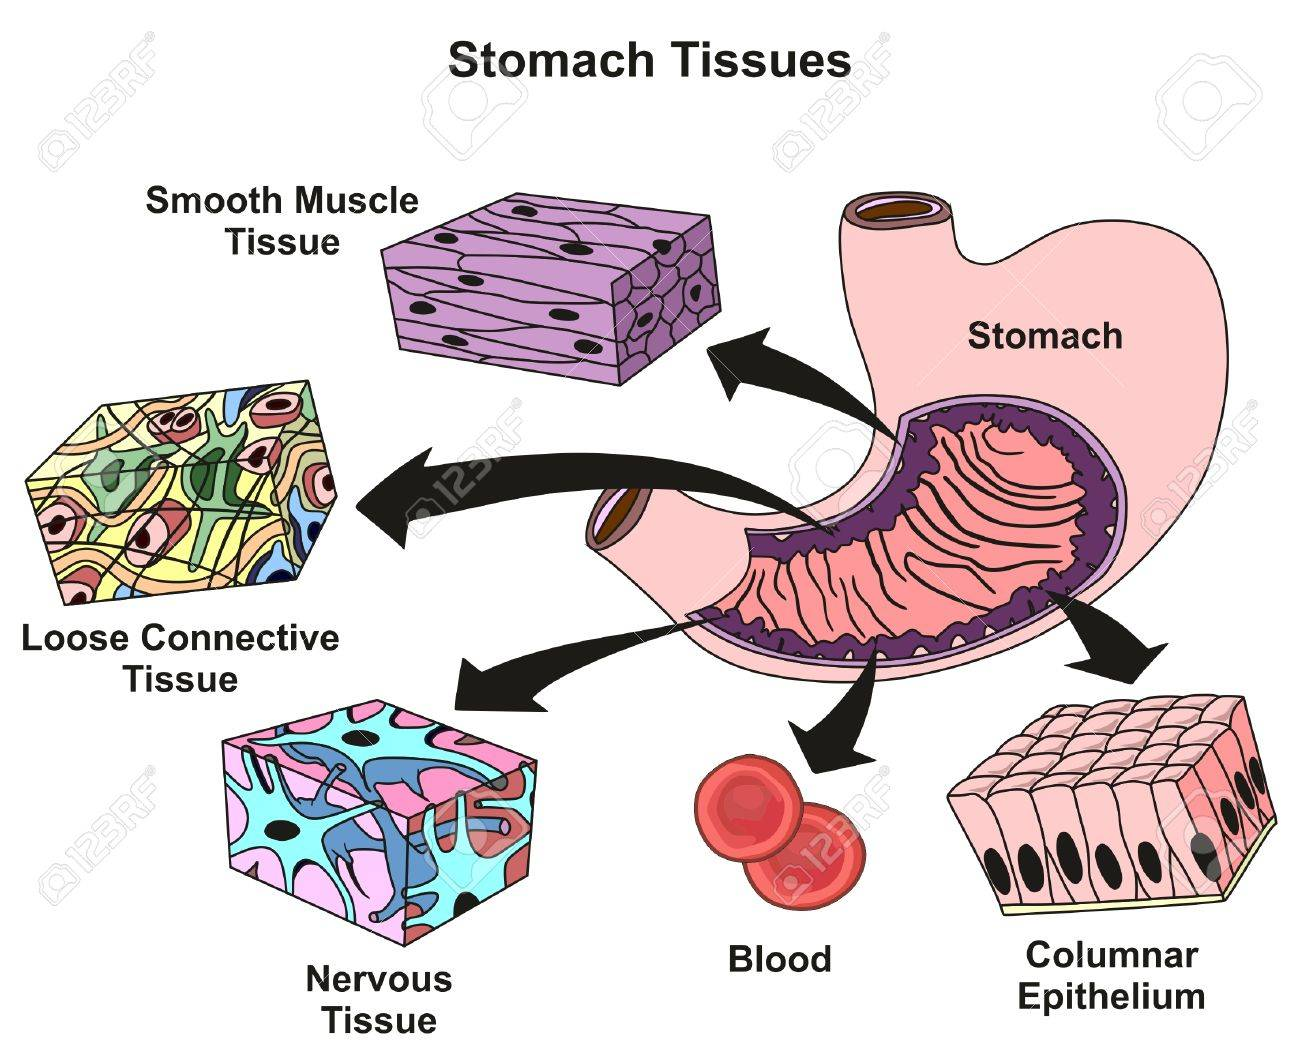 hight resolution of stomach tissues types and structure infographic diagram including smooth muscle loose connective nervous blood columnar